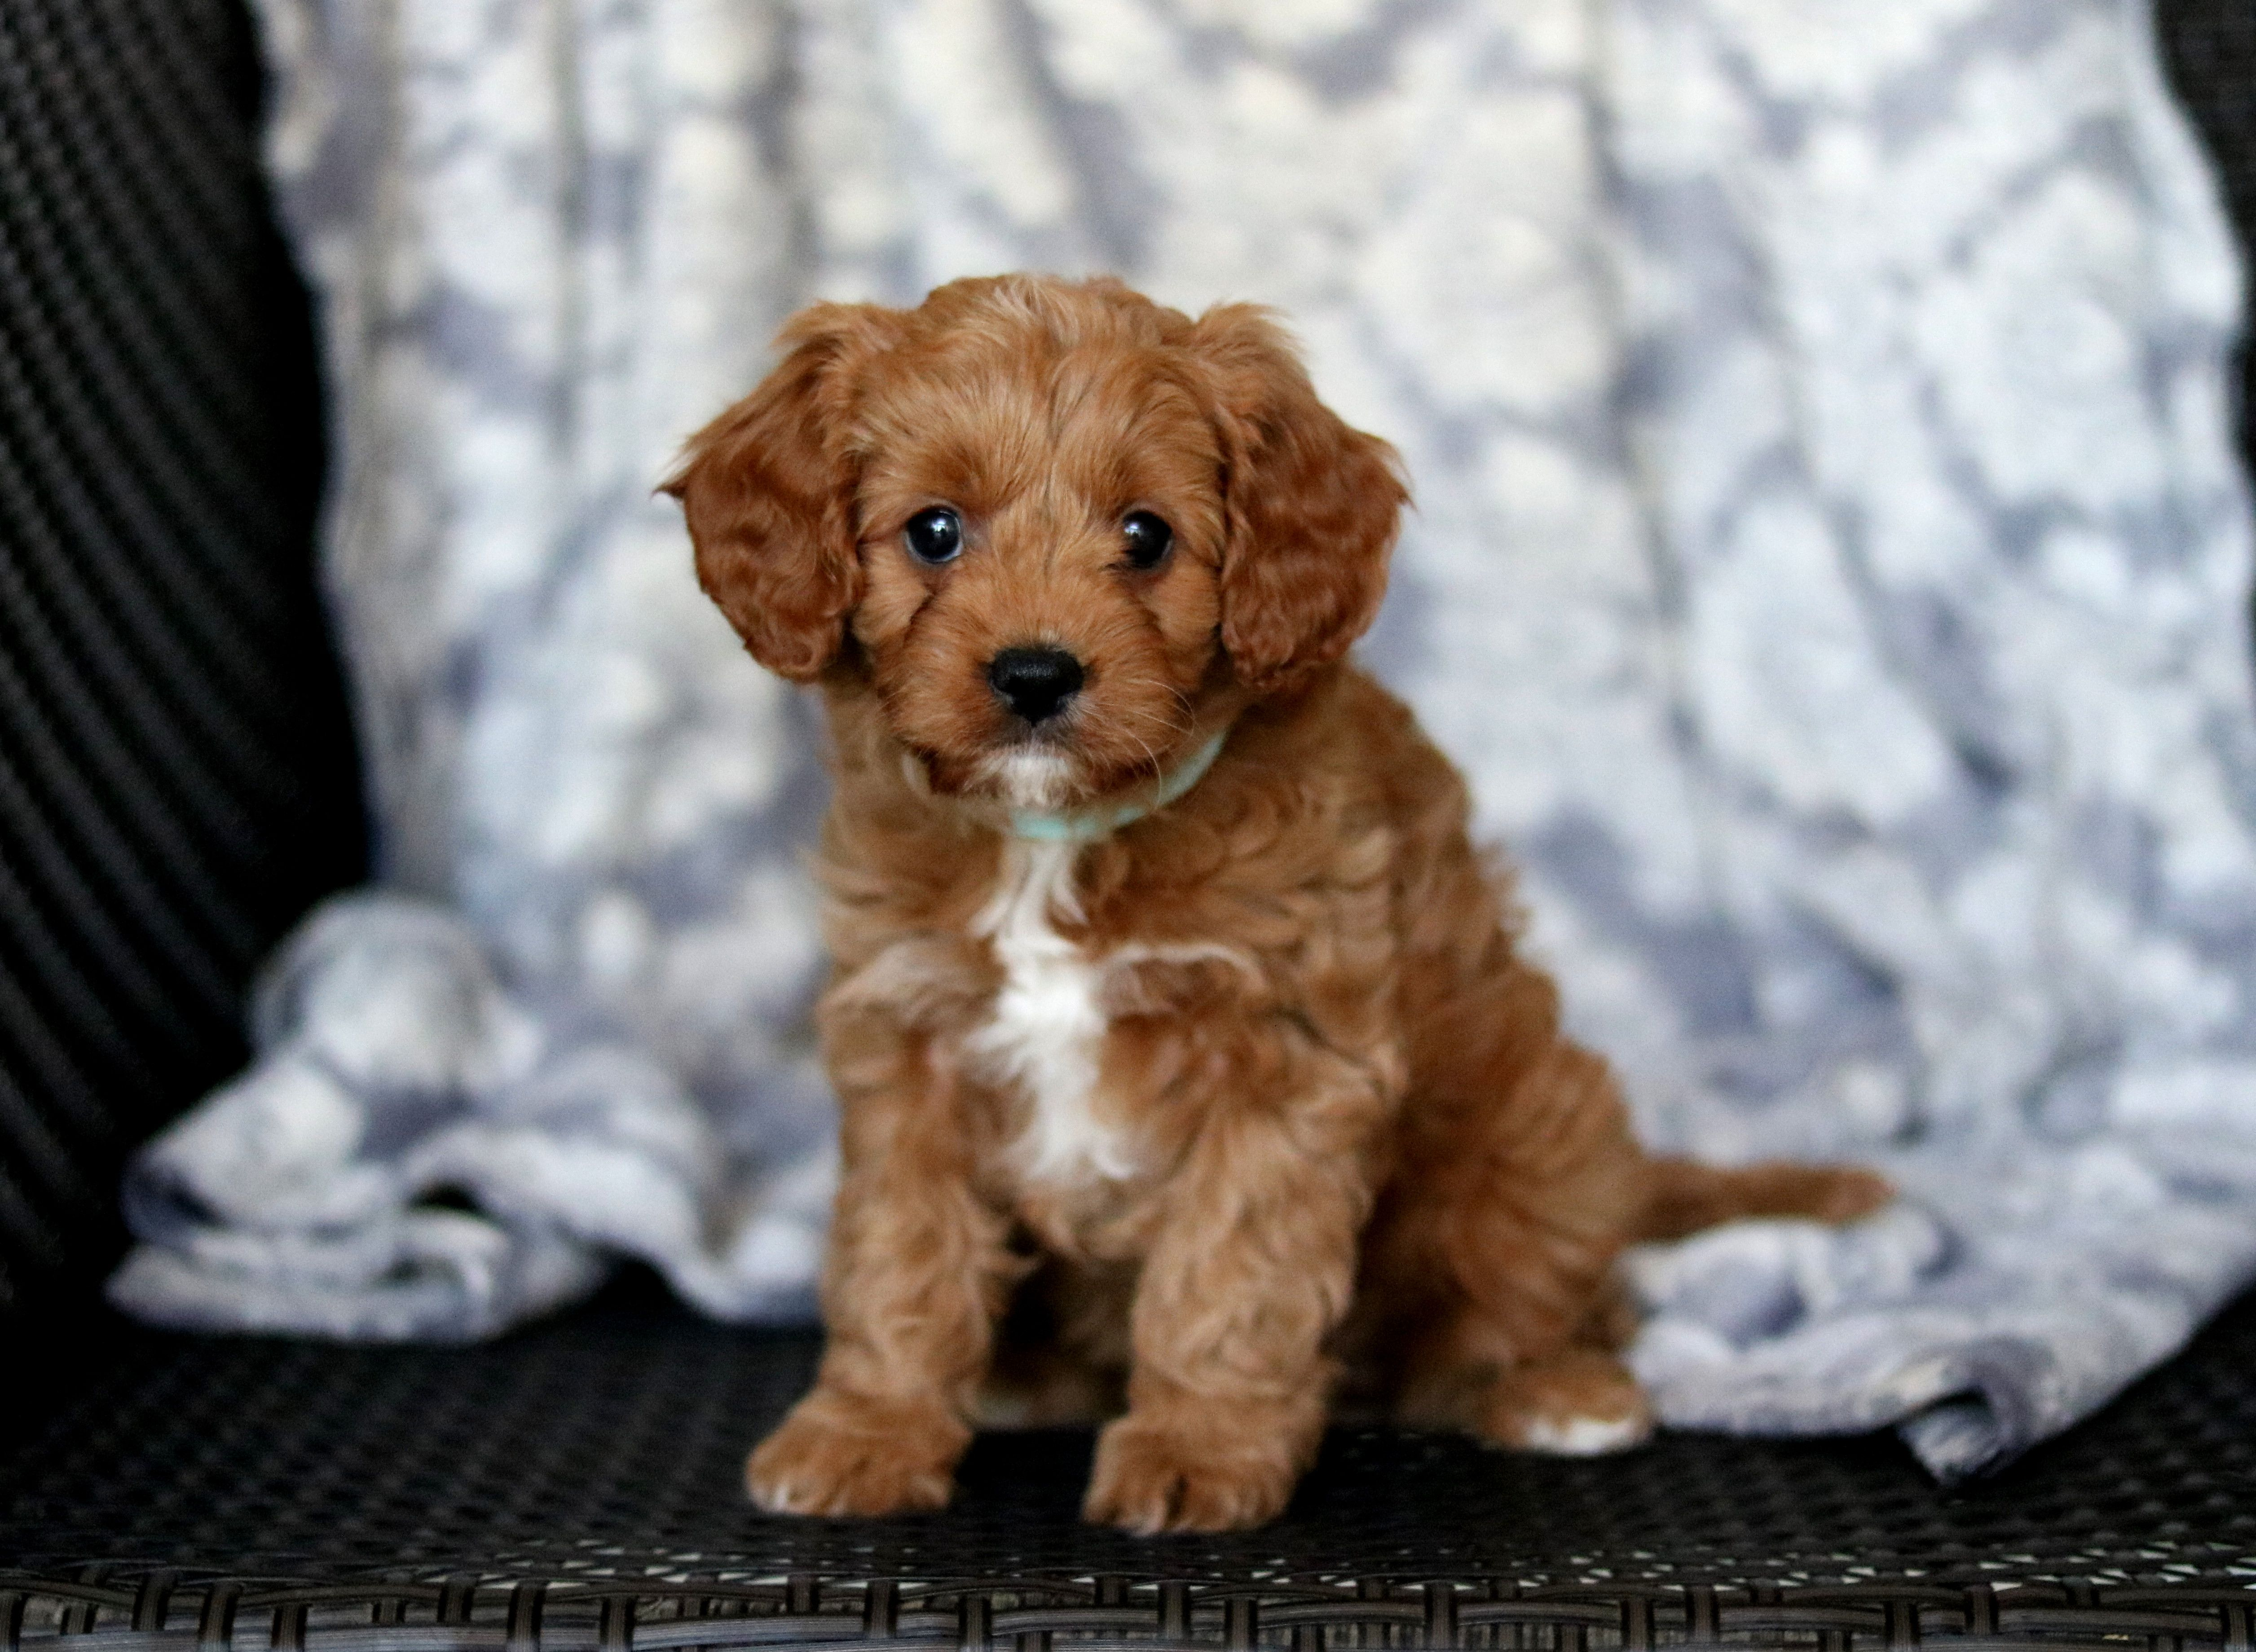 Raffi Is An Adorable Cavapoo Puppy He Is A